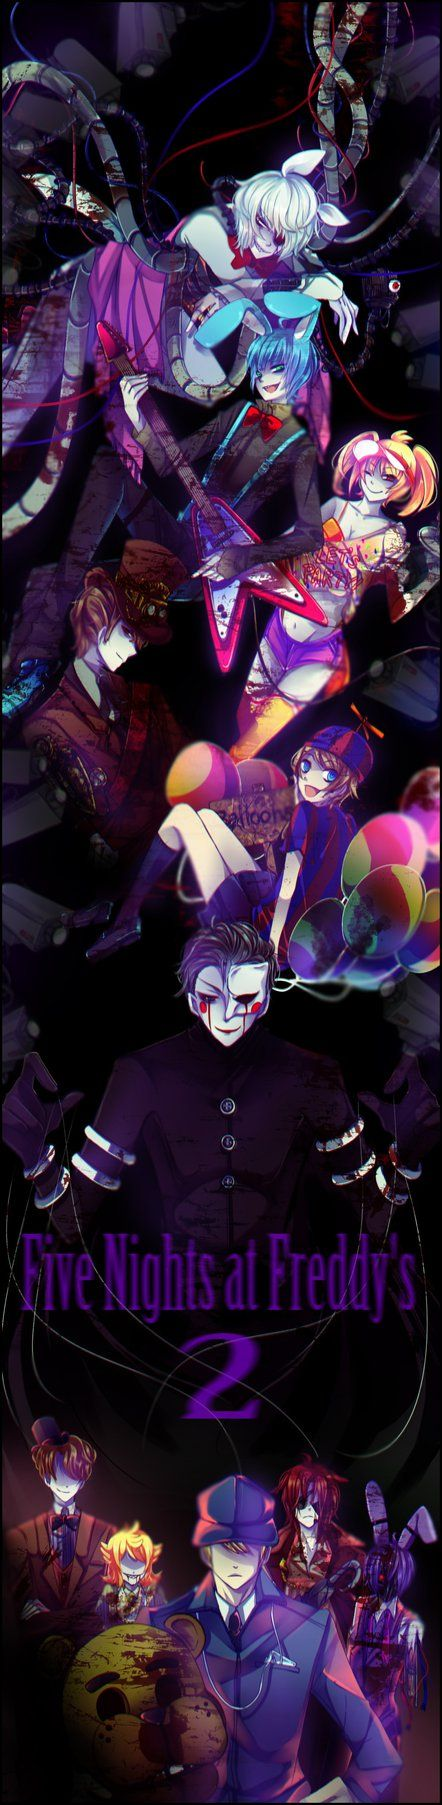 Five Nights at Freddy's2 by gatanii69 on DeviantArt